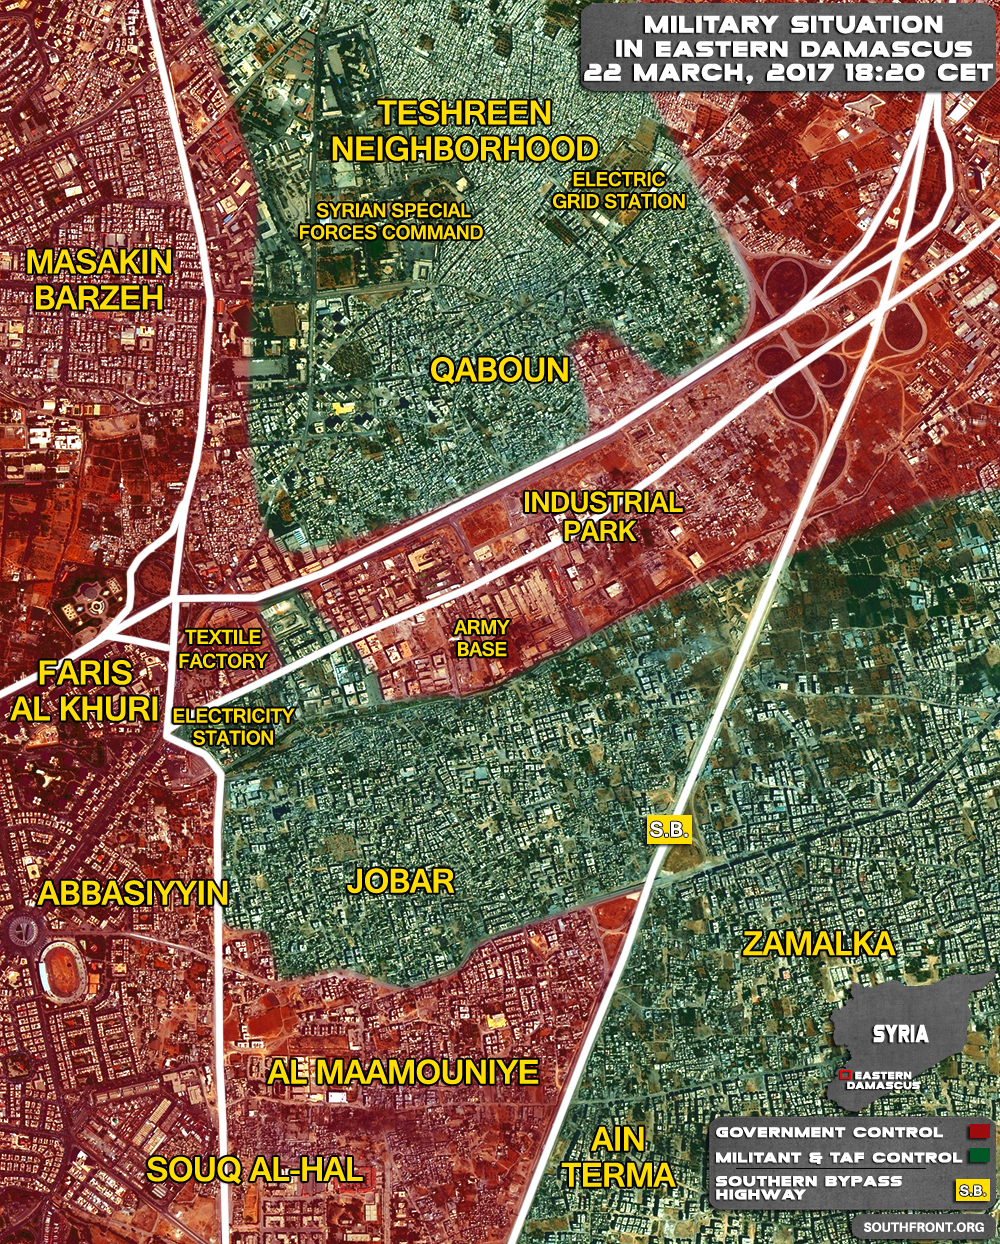 Military Situation In Qabun Industrial Area In Eastern Damascus On March 22, 2017 (Map Update)